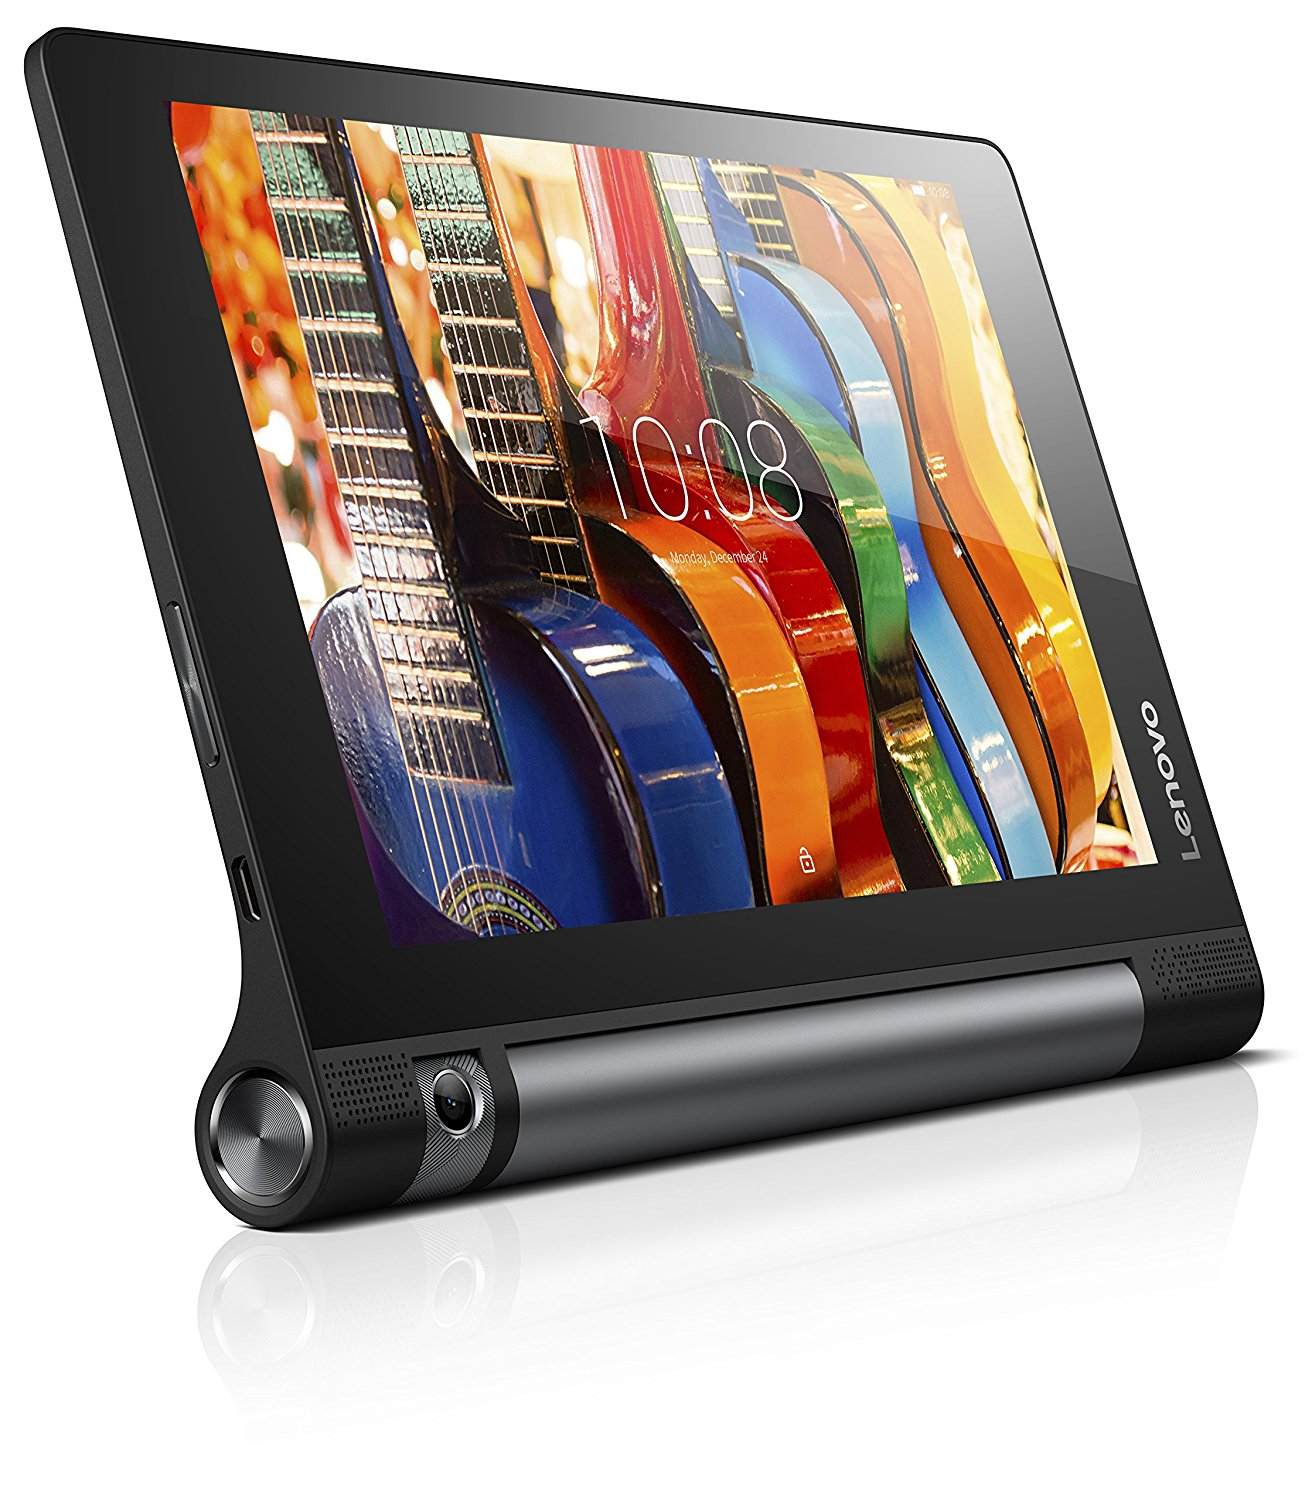 "Lenovo Yoga Tab 3 - HD 8"" Android Tablet Computer (Qualcomm Snapdragon APQ8009, 2GB RAM, 16GB SSD) ZA090094US"